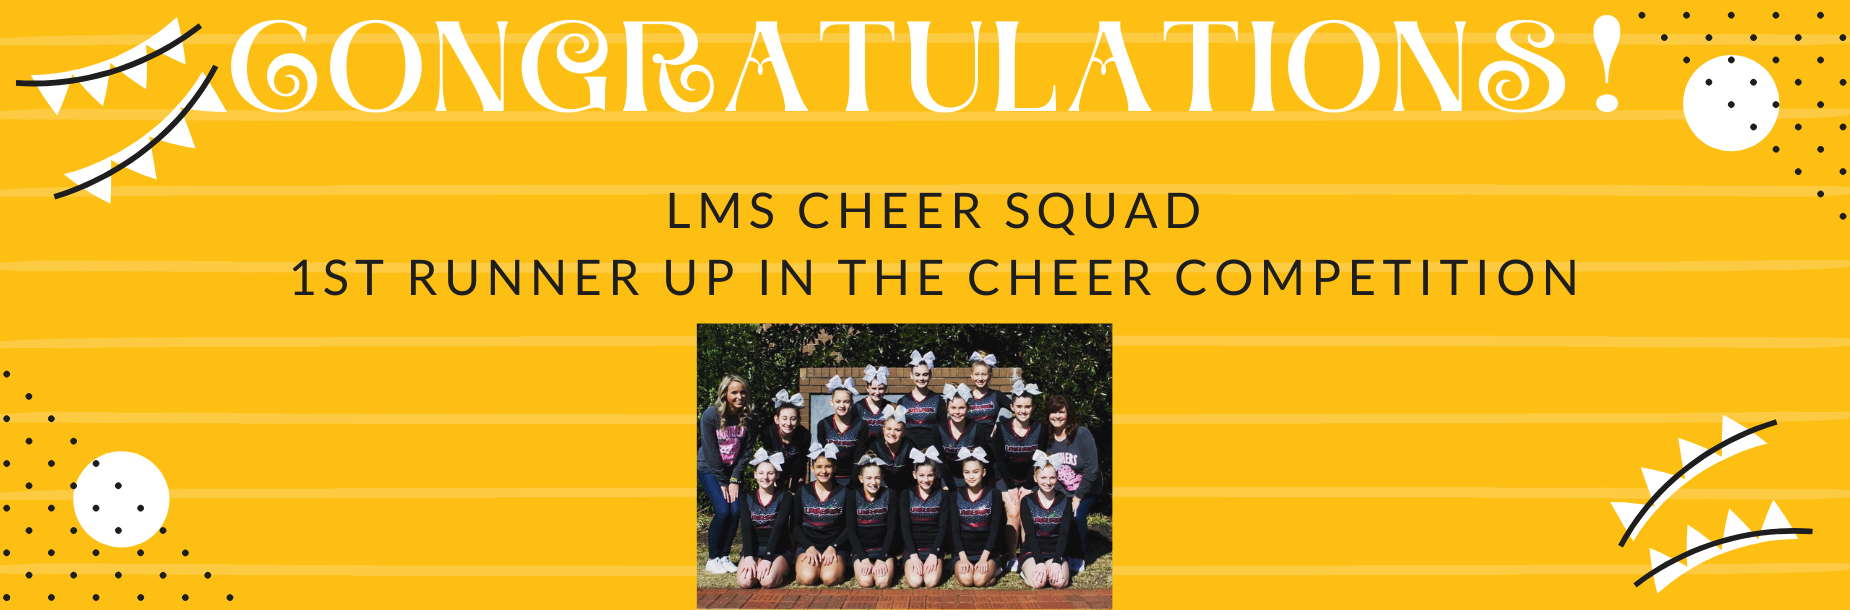 Congratulations LMS Cheer Squad 1st Runner up in the cheer competition